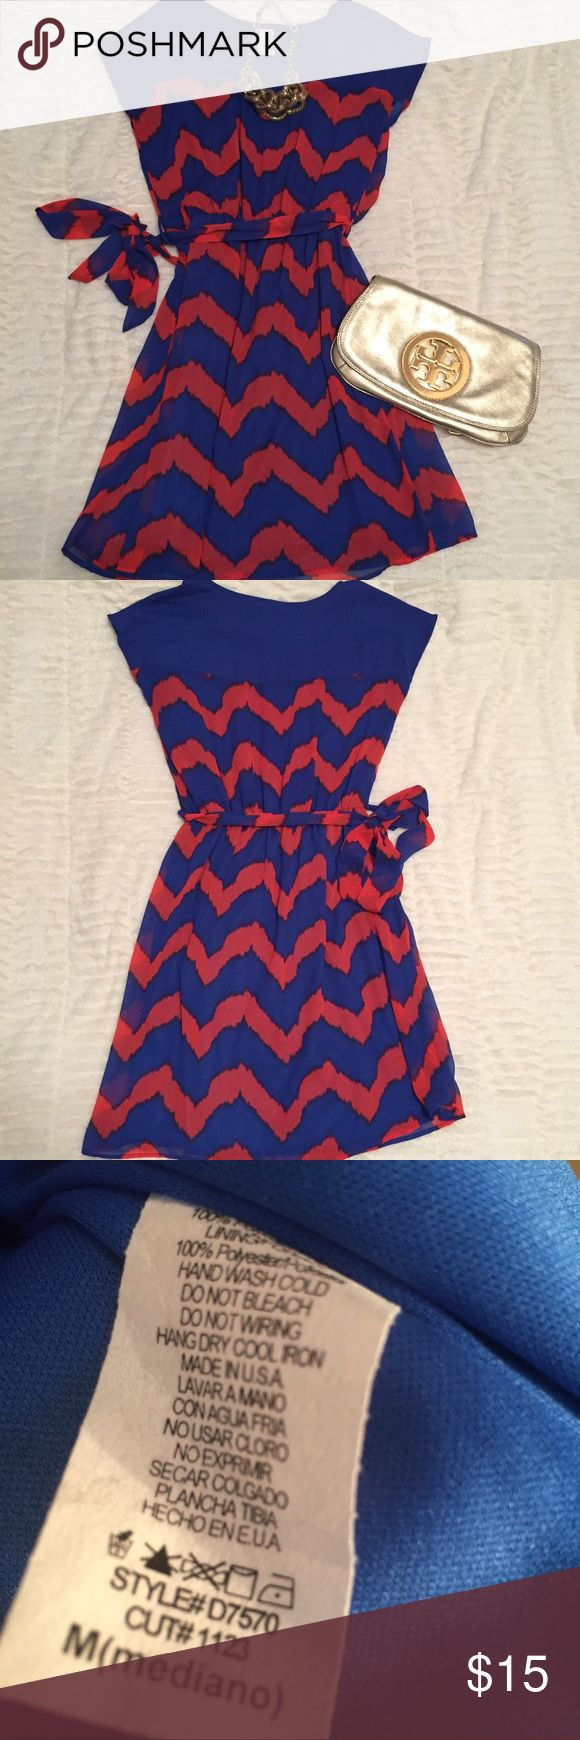 """Blue and Orange Chevron Dress Blue and orange chevron dress with tie belt and elastic waist-100 poly- skirt portion is approx 18""""-good used condition Francesca's Collections Dresses"""